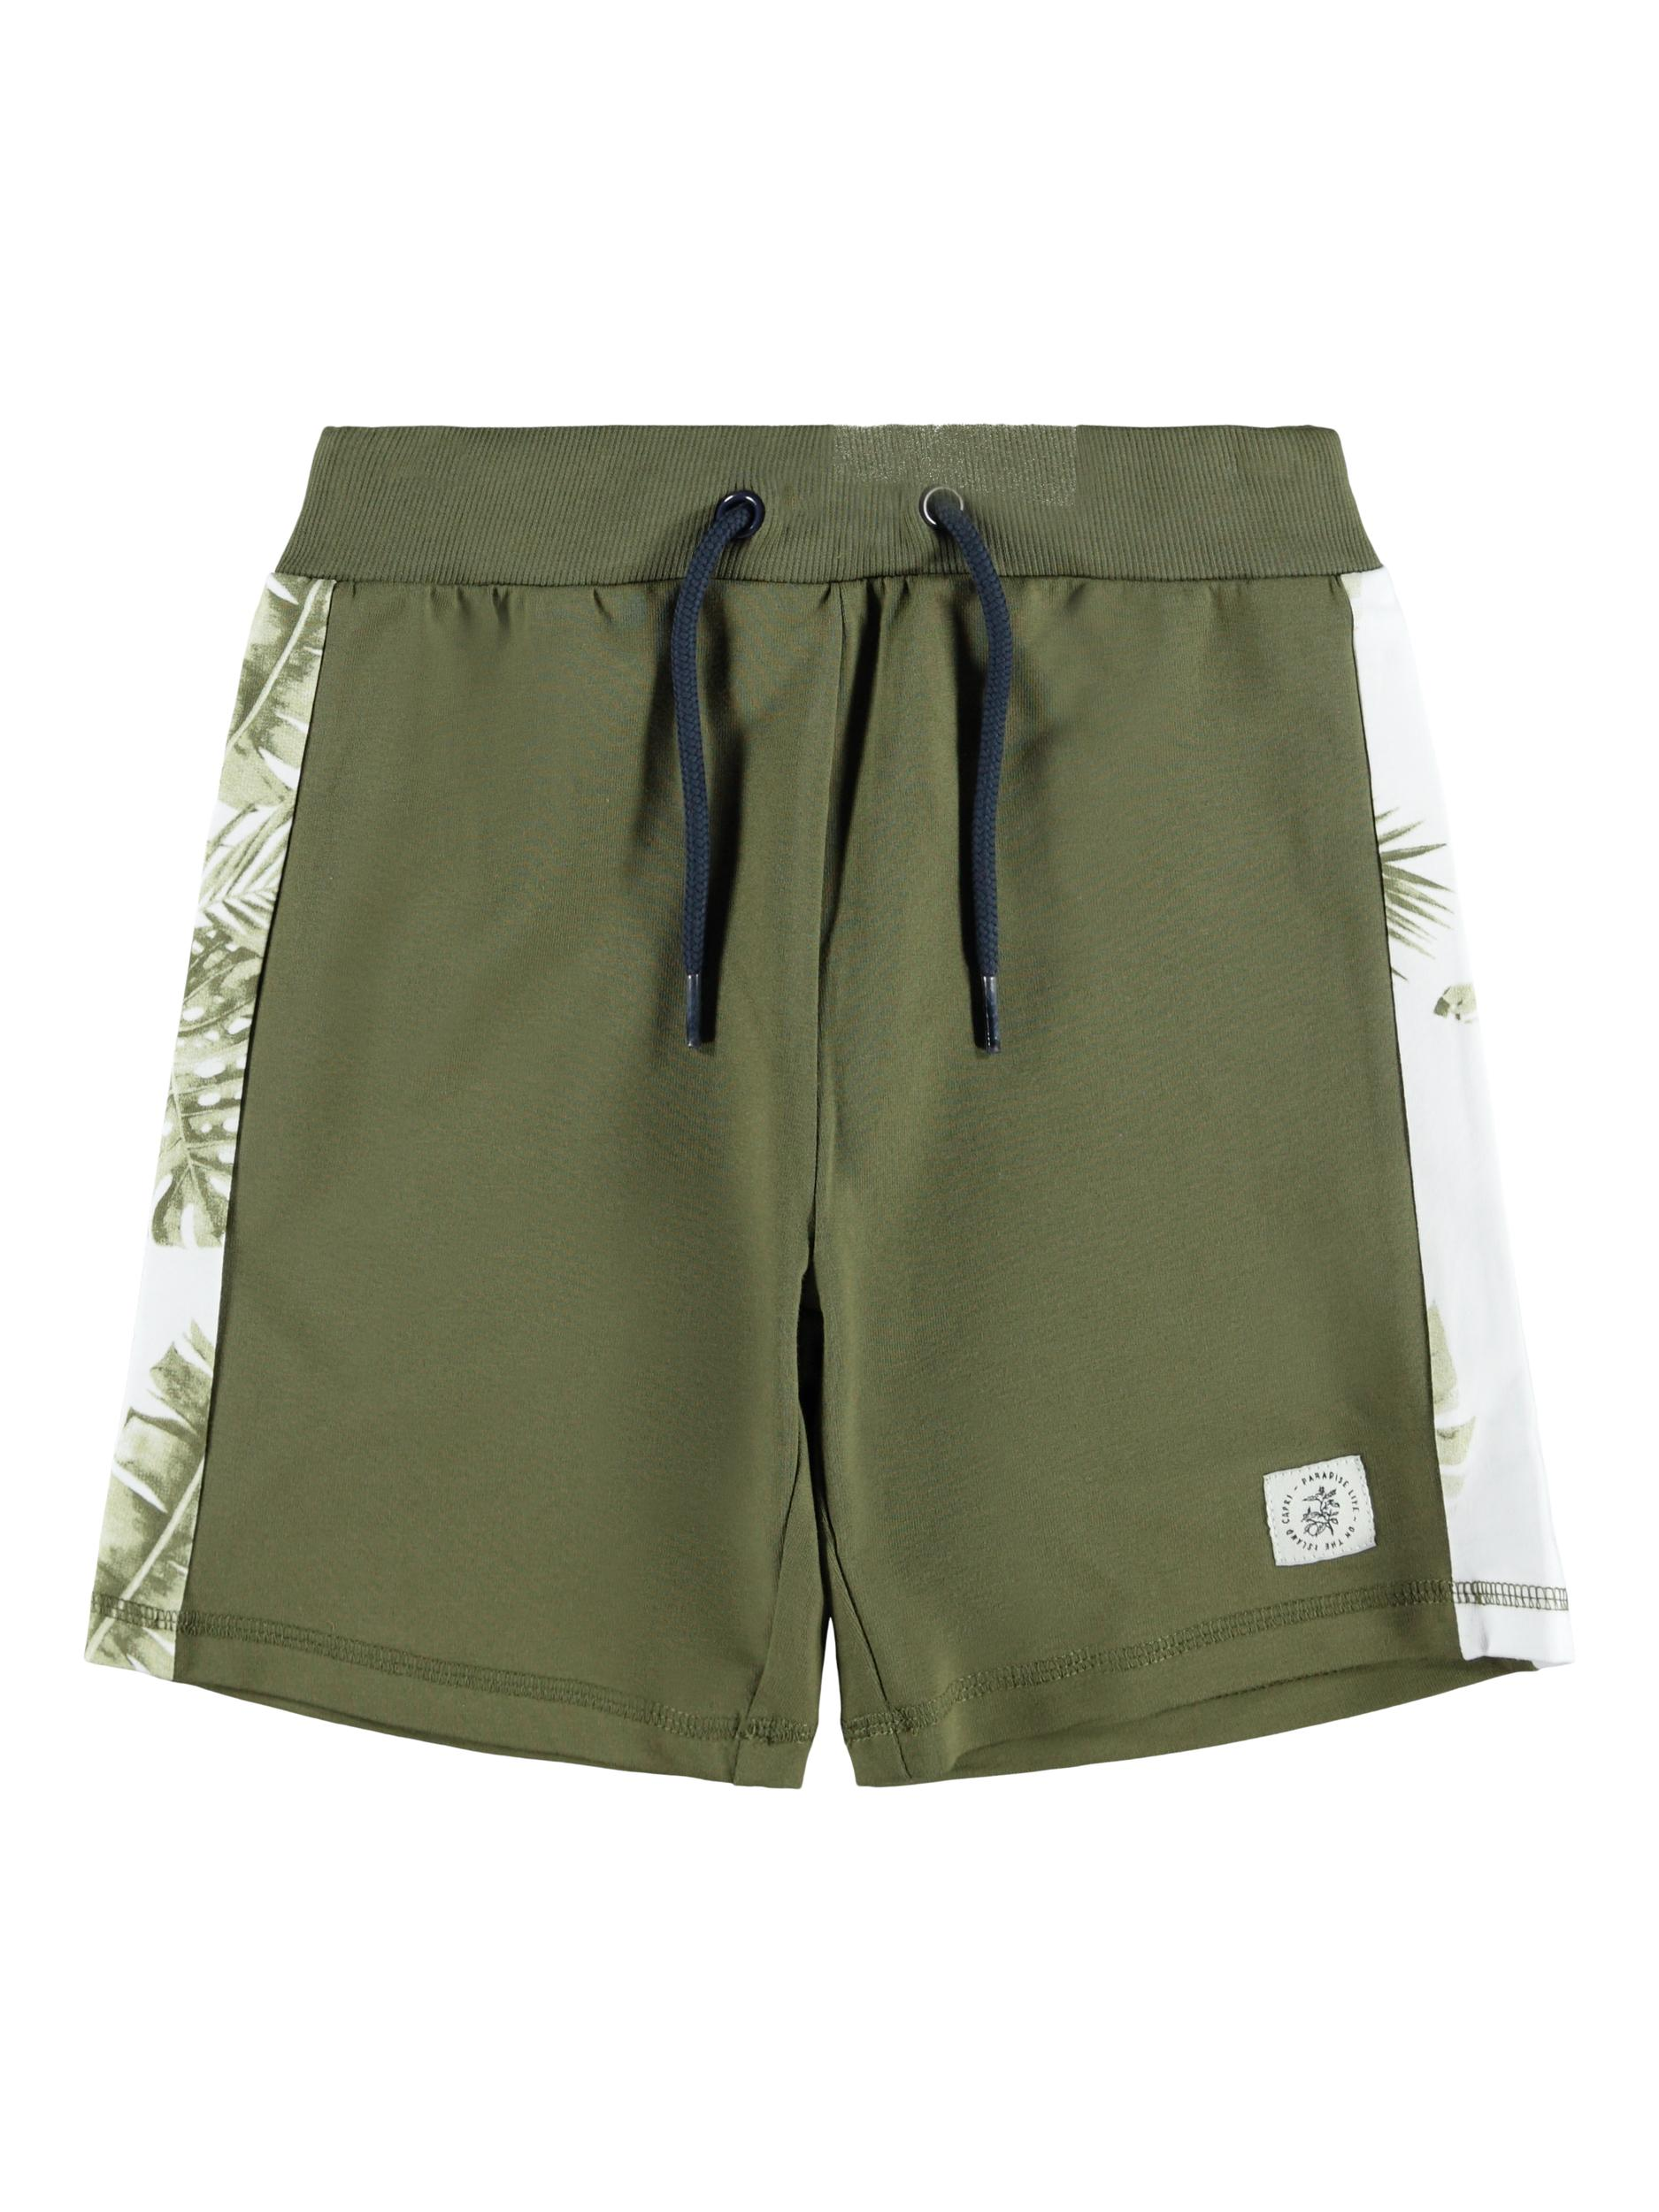 Name It Hanry sweat shorts, ivy green, 134